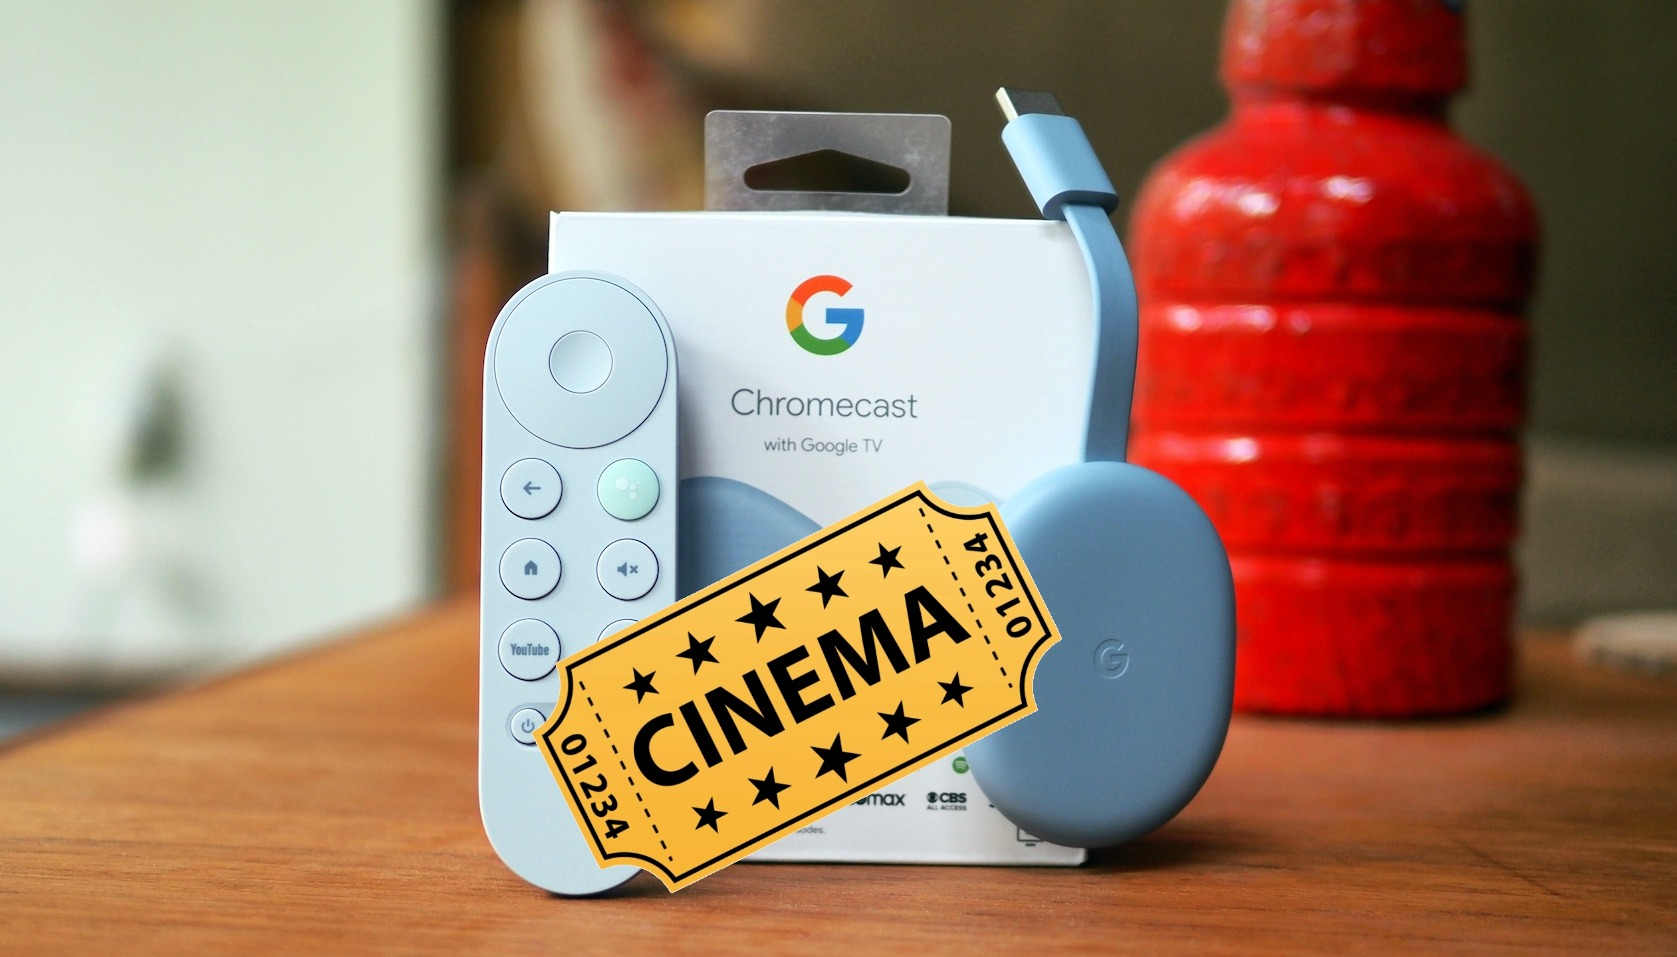 How To Install Cinema HD APK on Google TV 4K with Chromecast